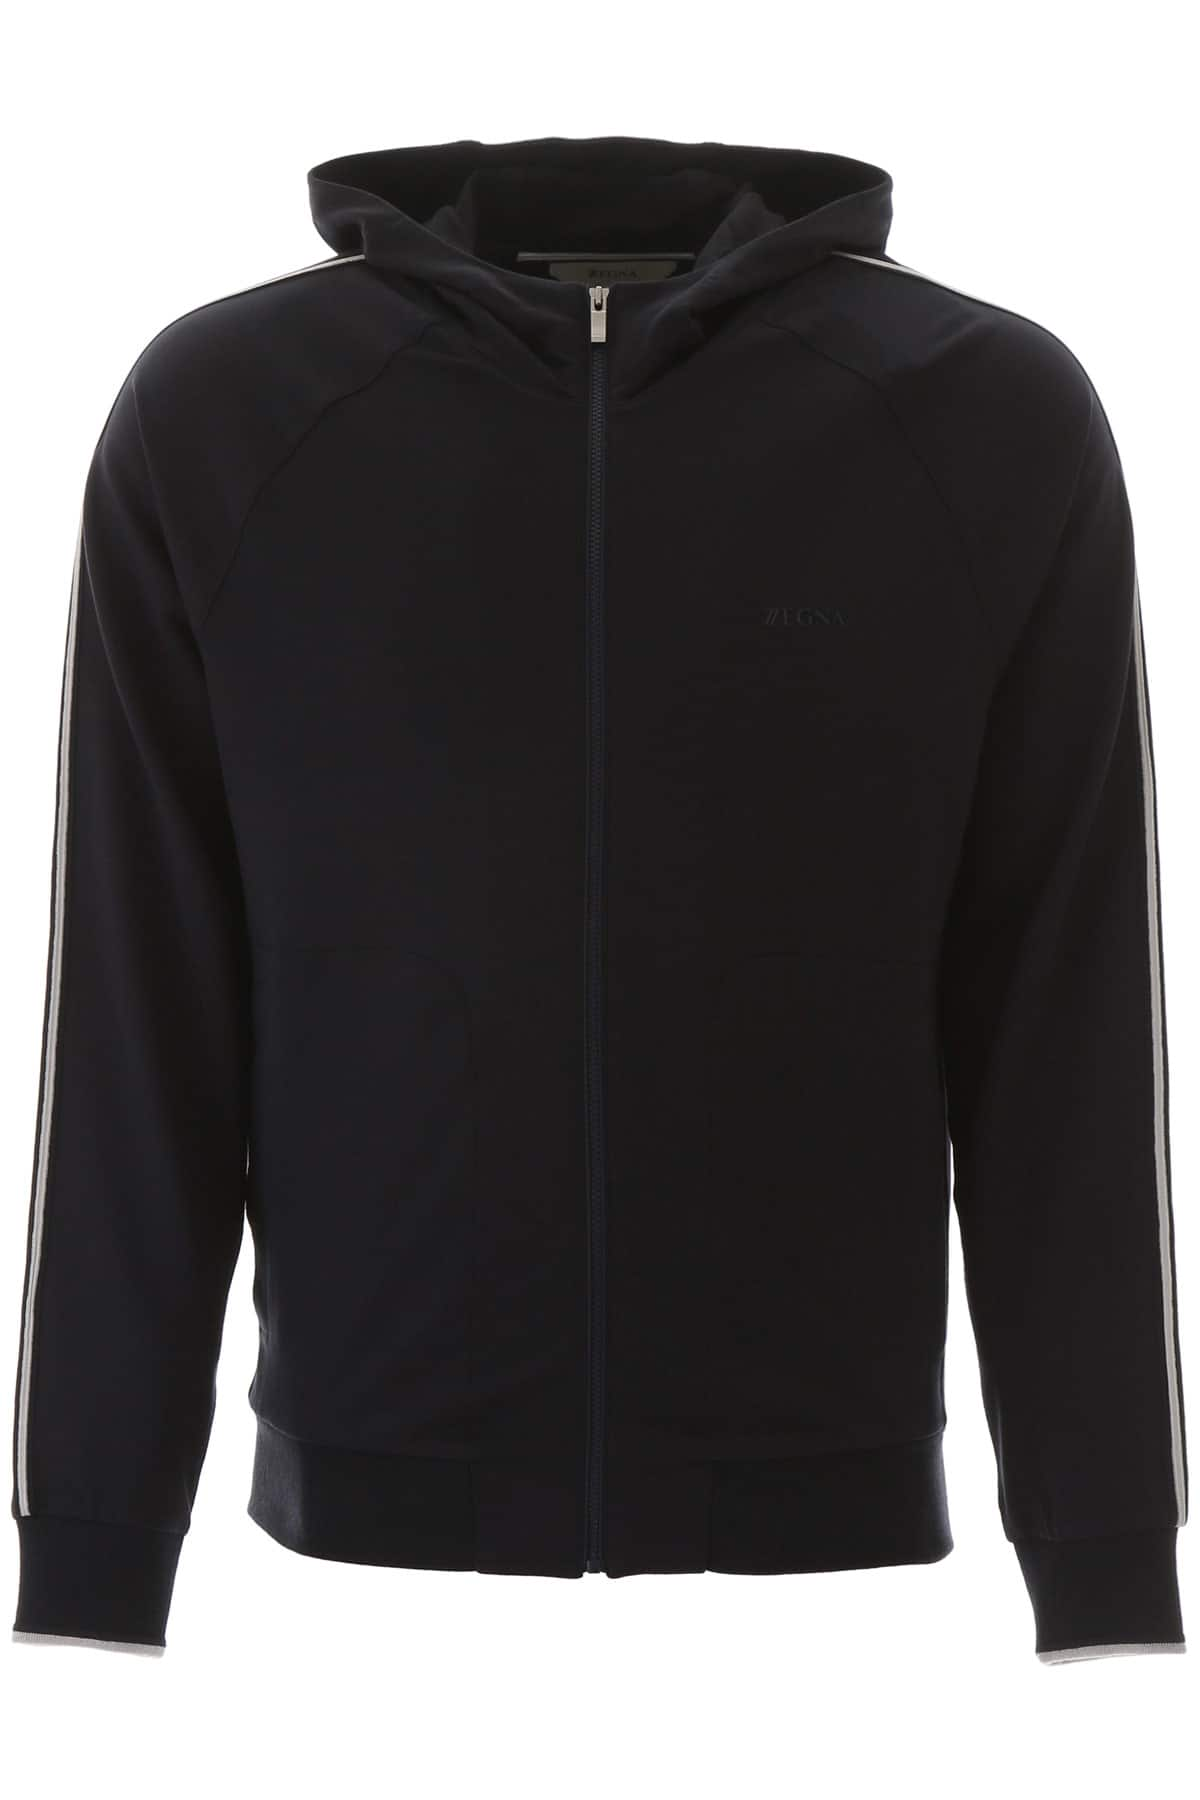 Z ZEGNA HOODIE WITH RUBBER LOGO L Blue Cotton